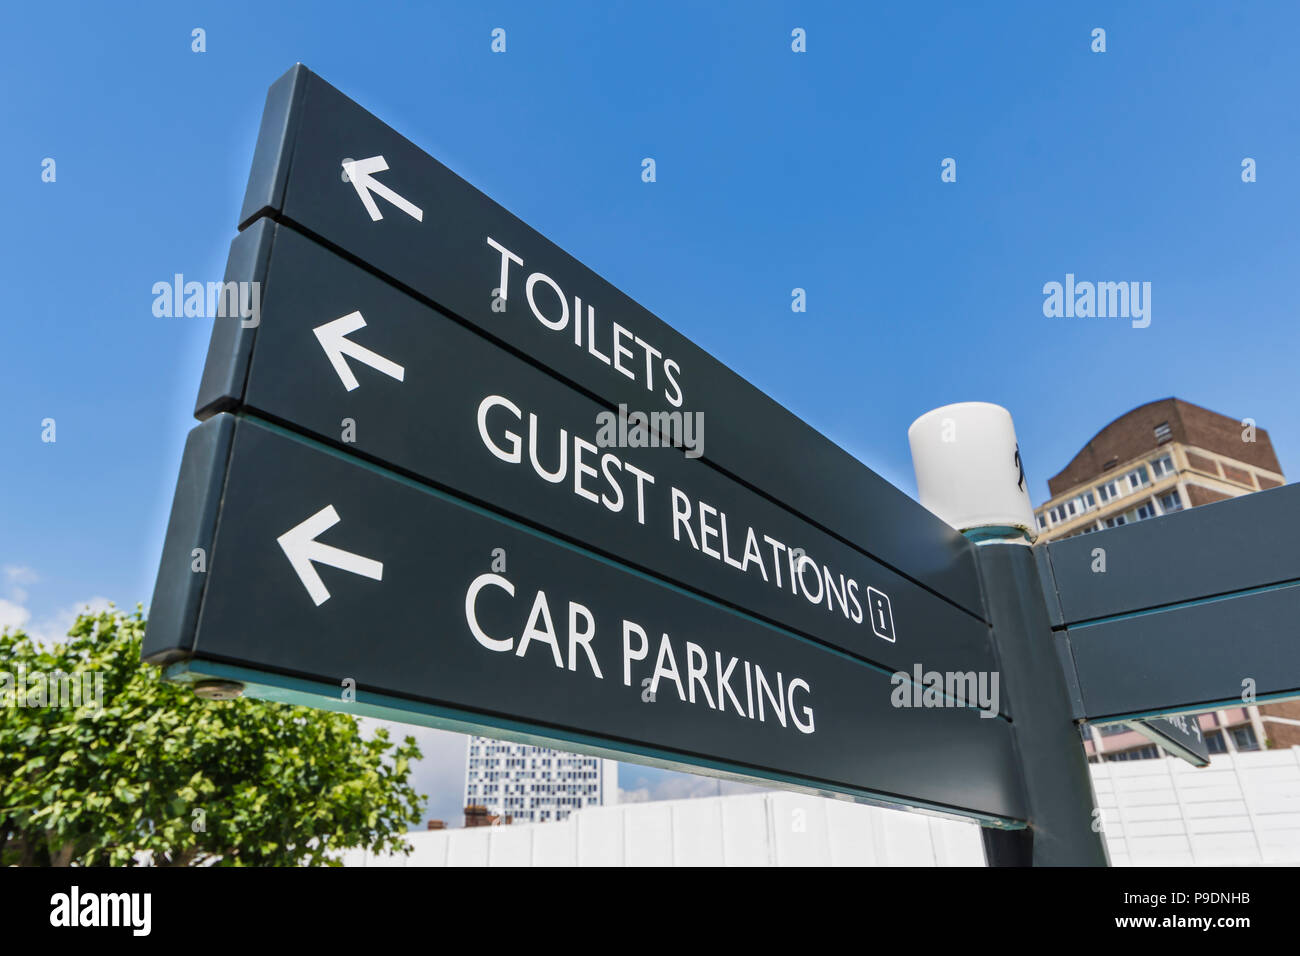 Public information sign in England, UK. Toilets sign. Guest relations sign. Car parking sign. Tourist information sign. Tourists information sign. - Stock Image